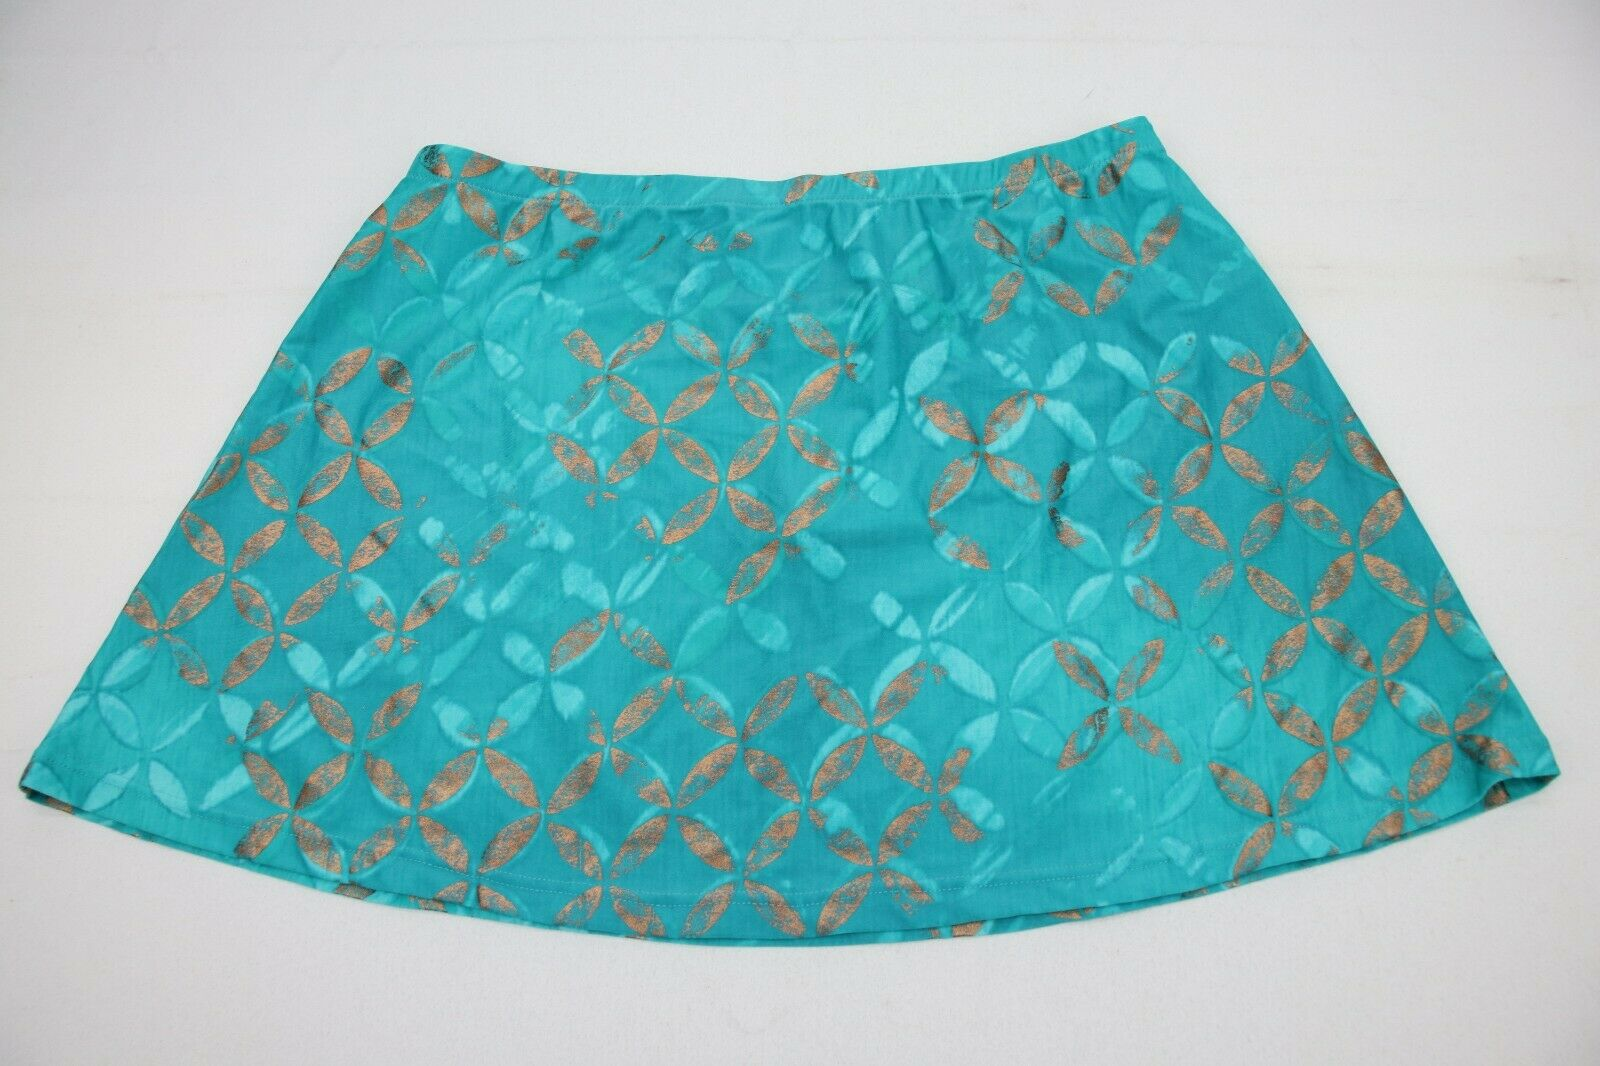 damen Mini Skirt Größe Medium Grün w Gold Pattern Gottex NEW W TAG